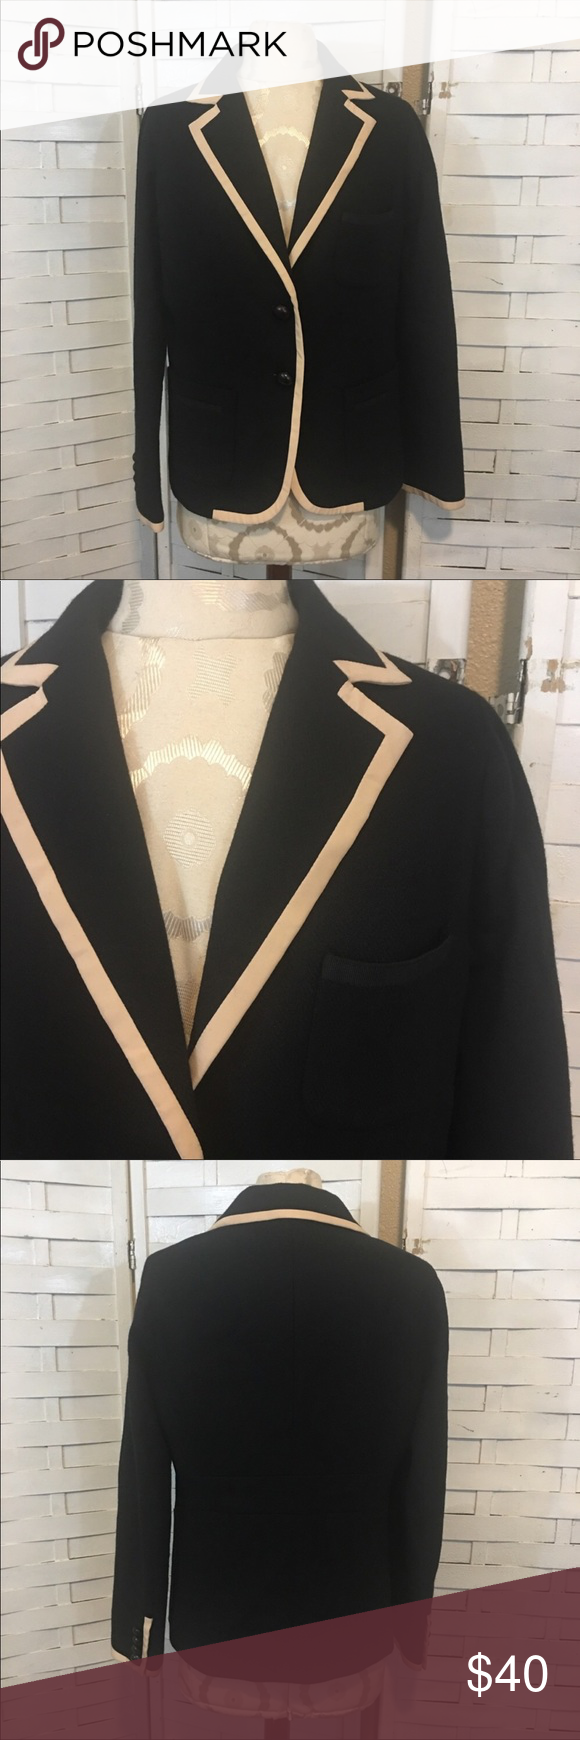 J.crew wool blazer N.643 Great condition wool blazer! Beautiful cream colored trim! No flaws to note. Fall and winter style staple! There was a small amount of pilling under the arms but I removed it with a fabric shaver. J. Crew Jackets & Coats Blazers